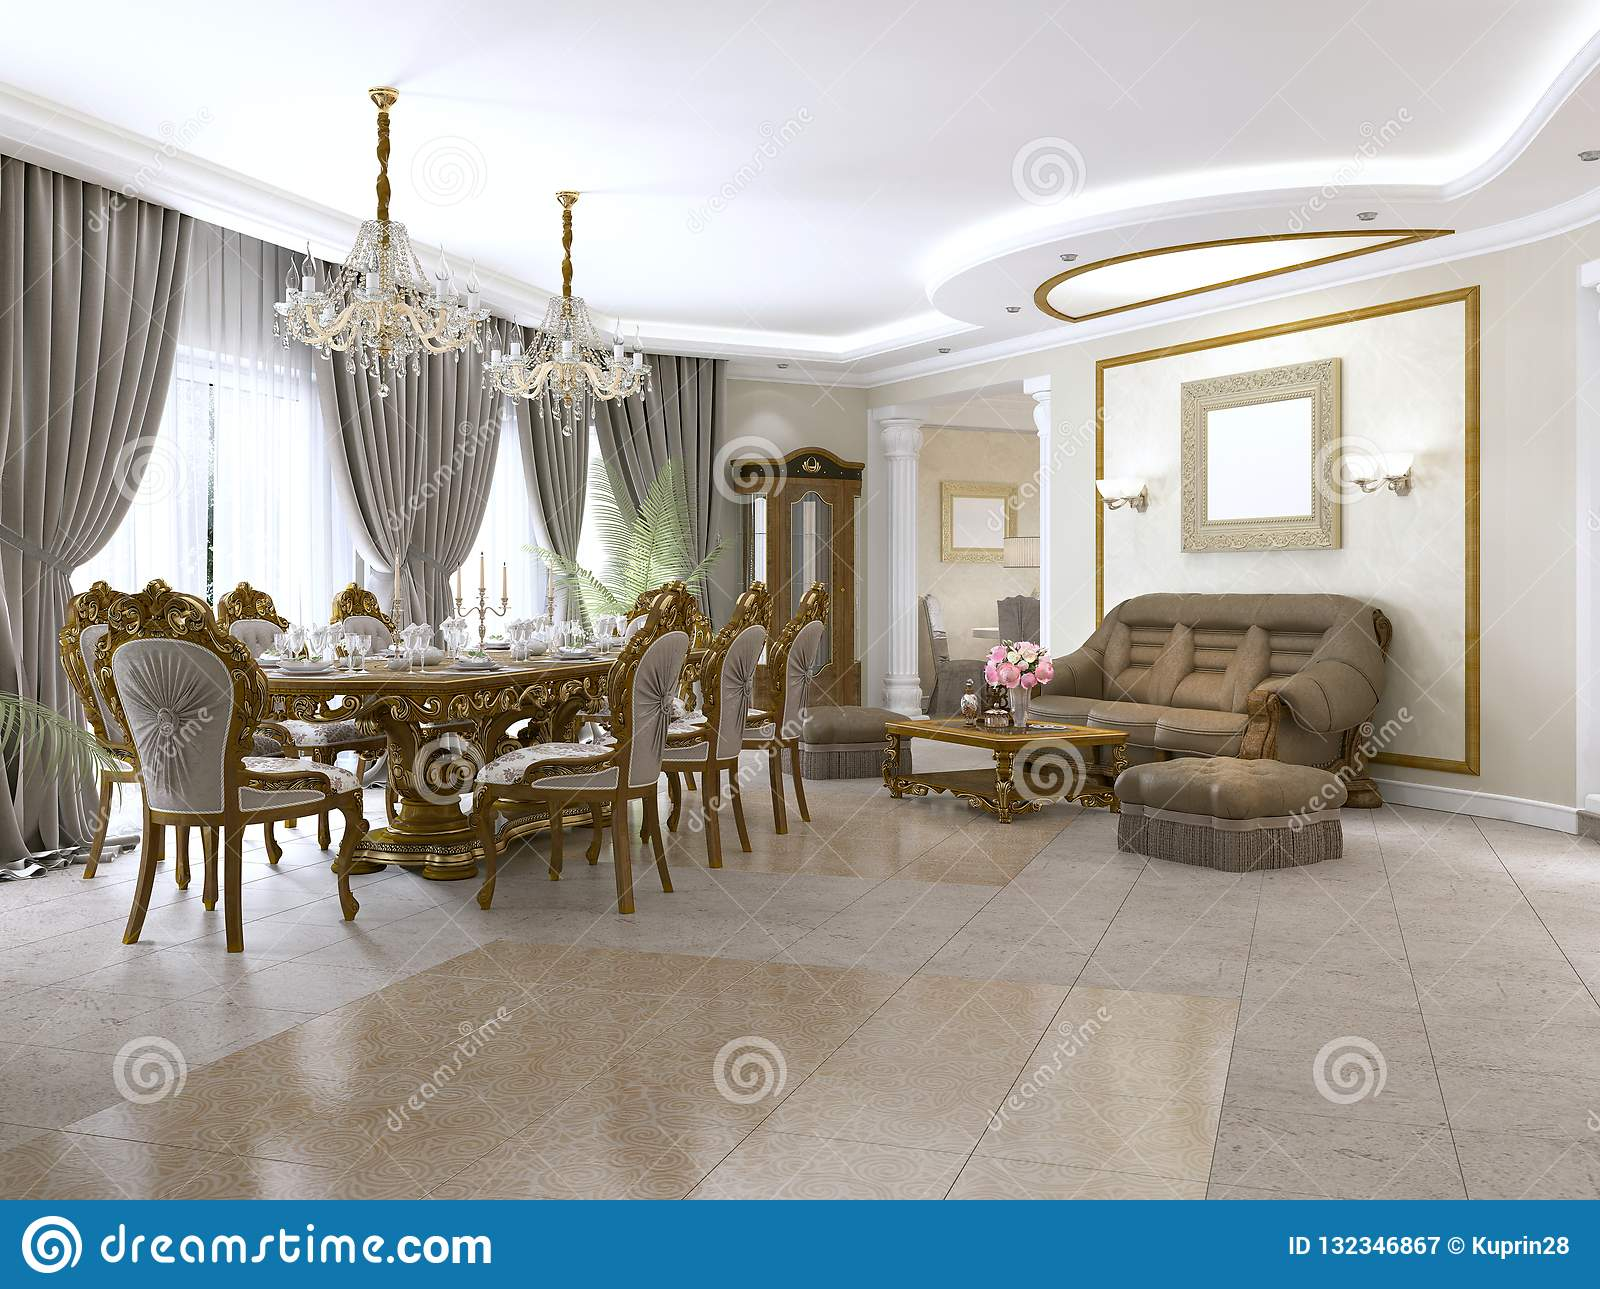 A Modern Classic Living Room In An Art Deco Style With A Dining Table And Views Of The Kitchen And The Foyer Stock Illustration Illustration Of House Interior 132346867